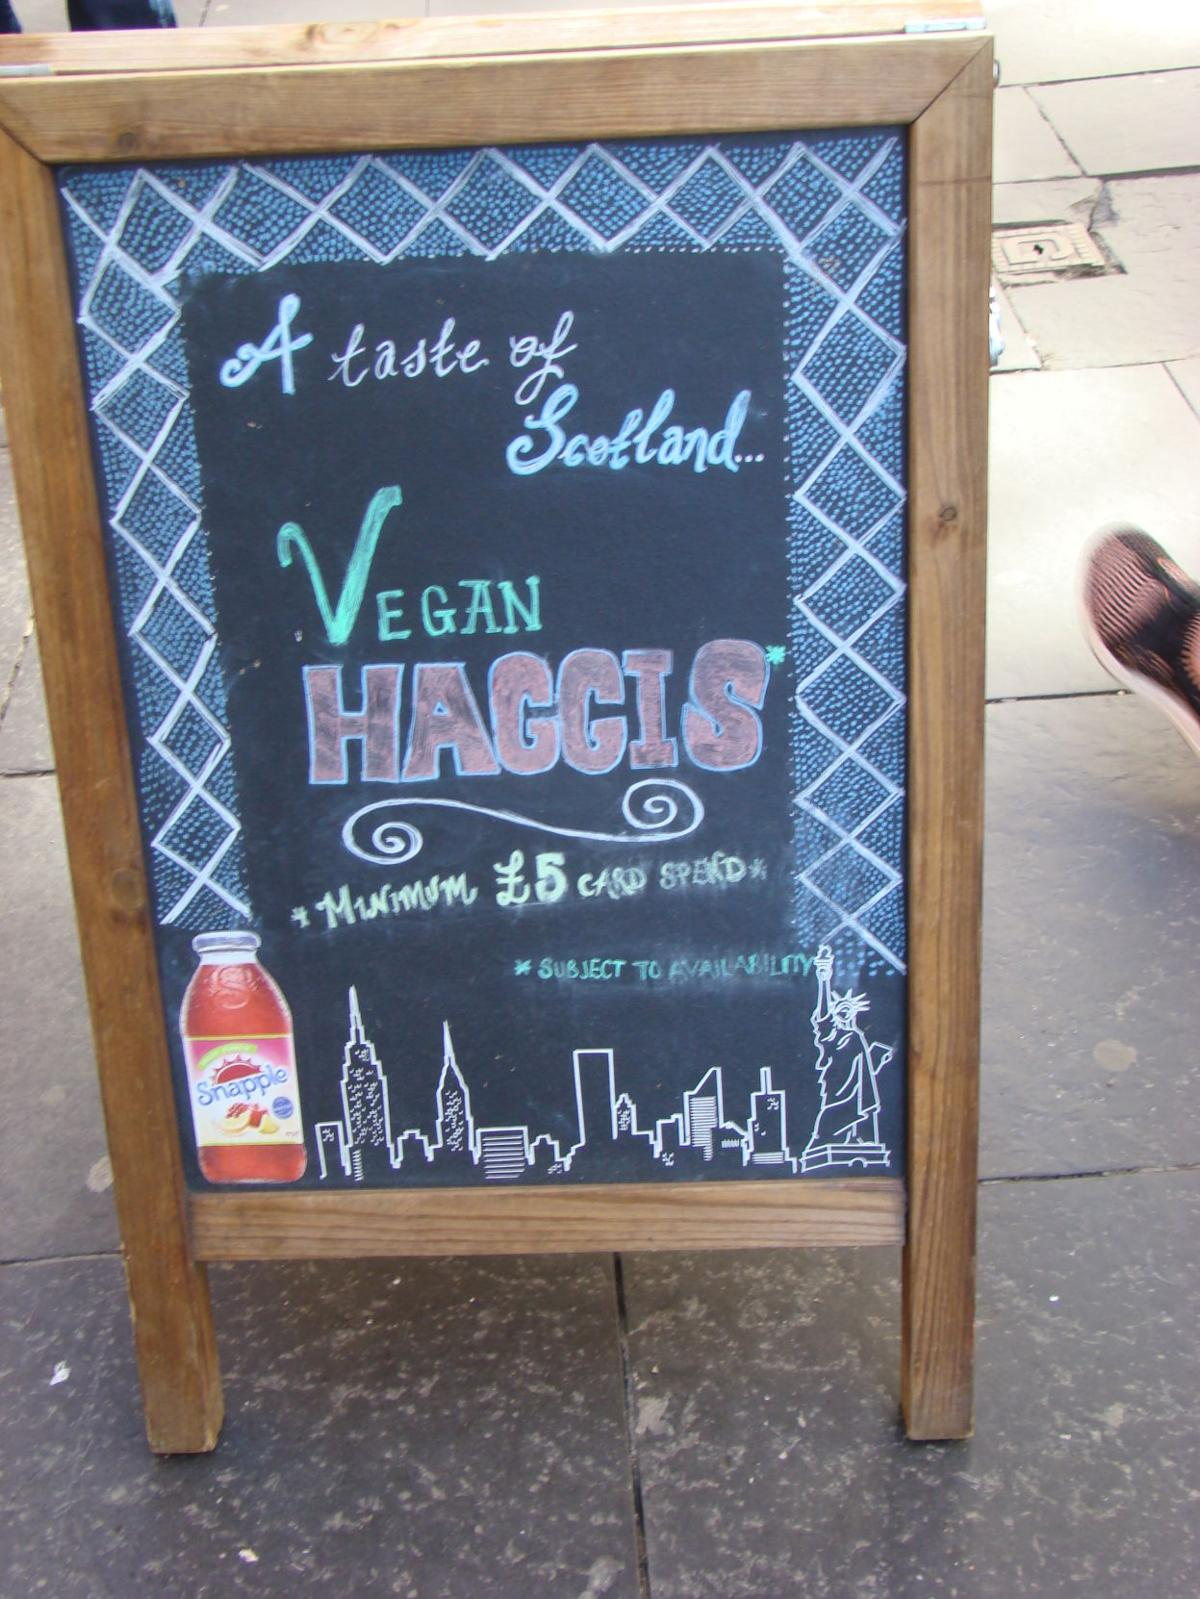 Writer Reed Hellman and friend Mike were able to try Scotland's national dish, Haggis.